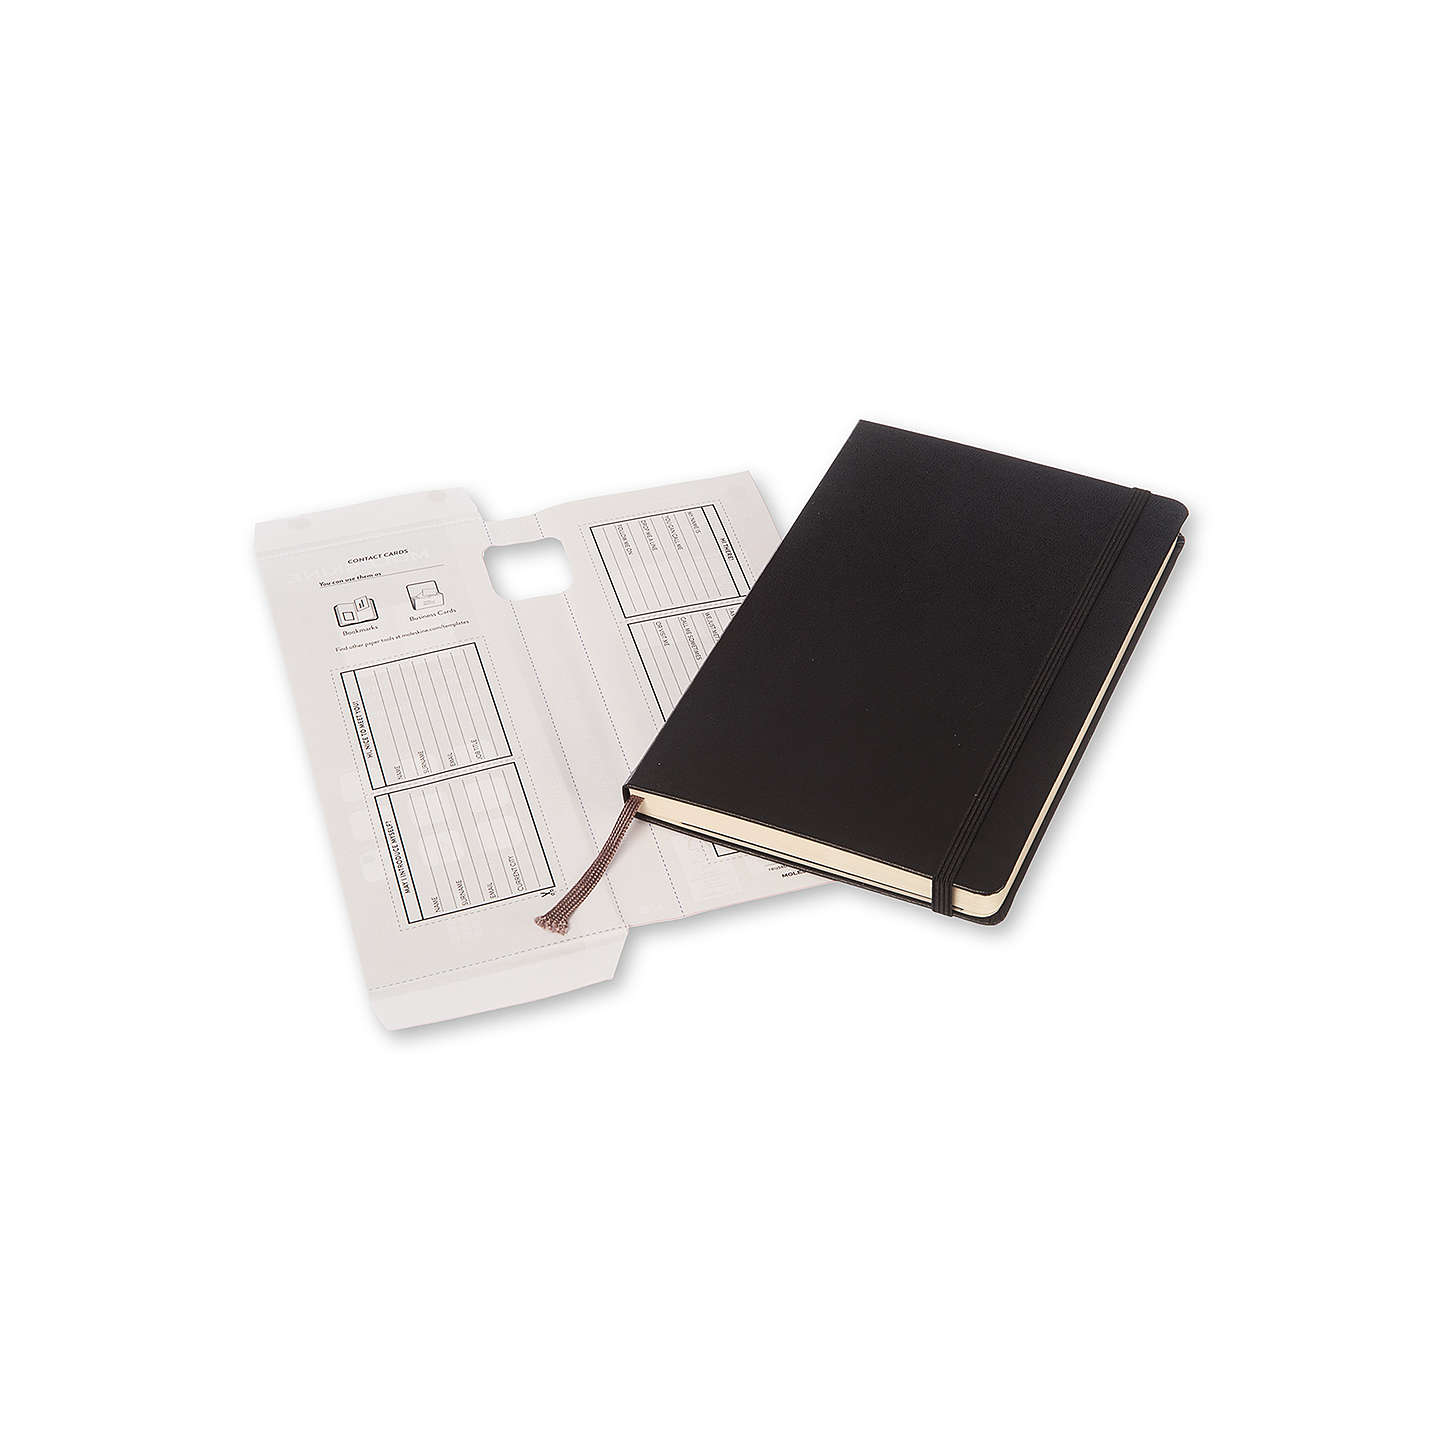 BuyMoleskine Large Hard Cover Professional Notebook, Black Online at johnlewis.com